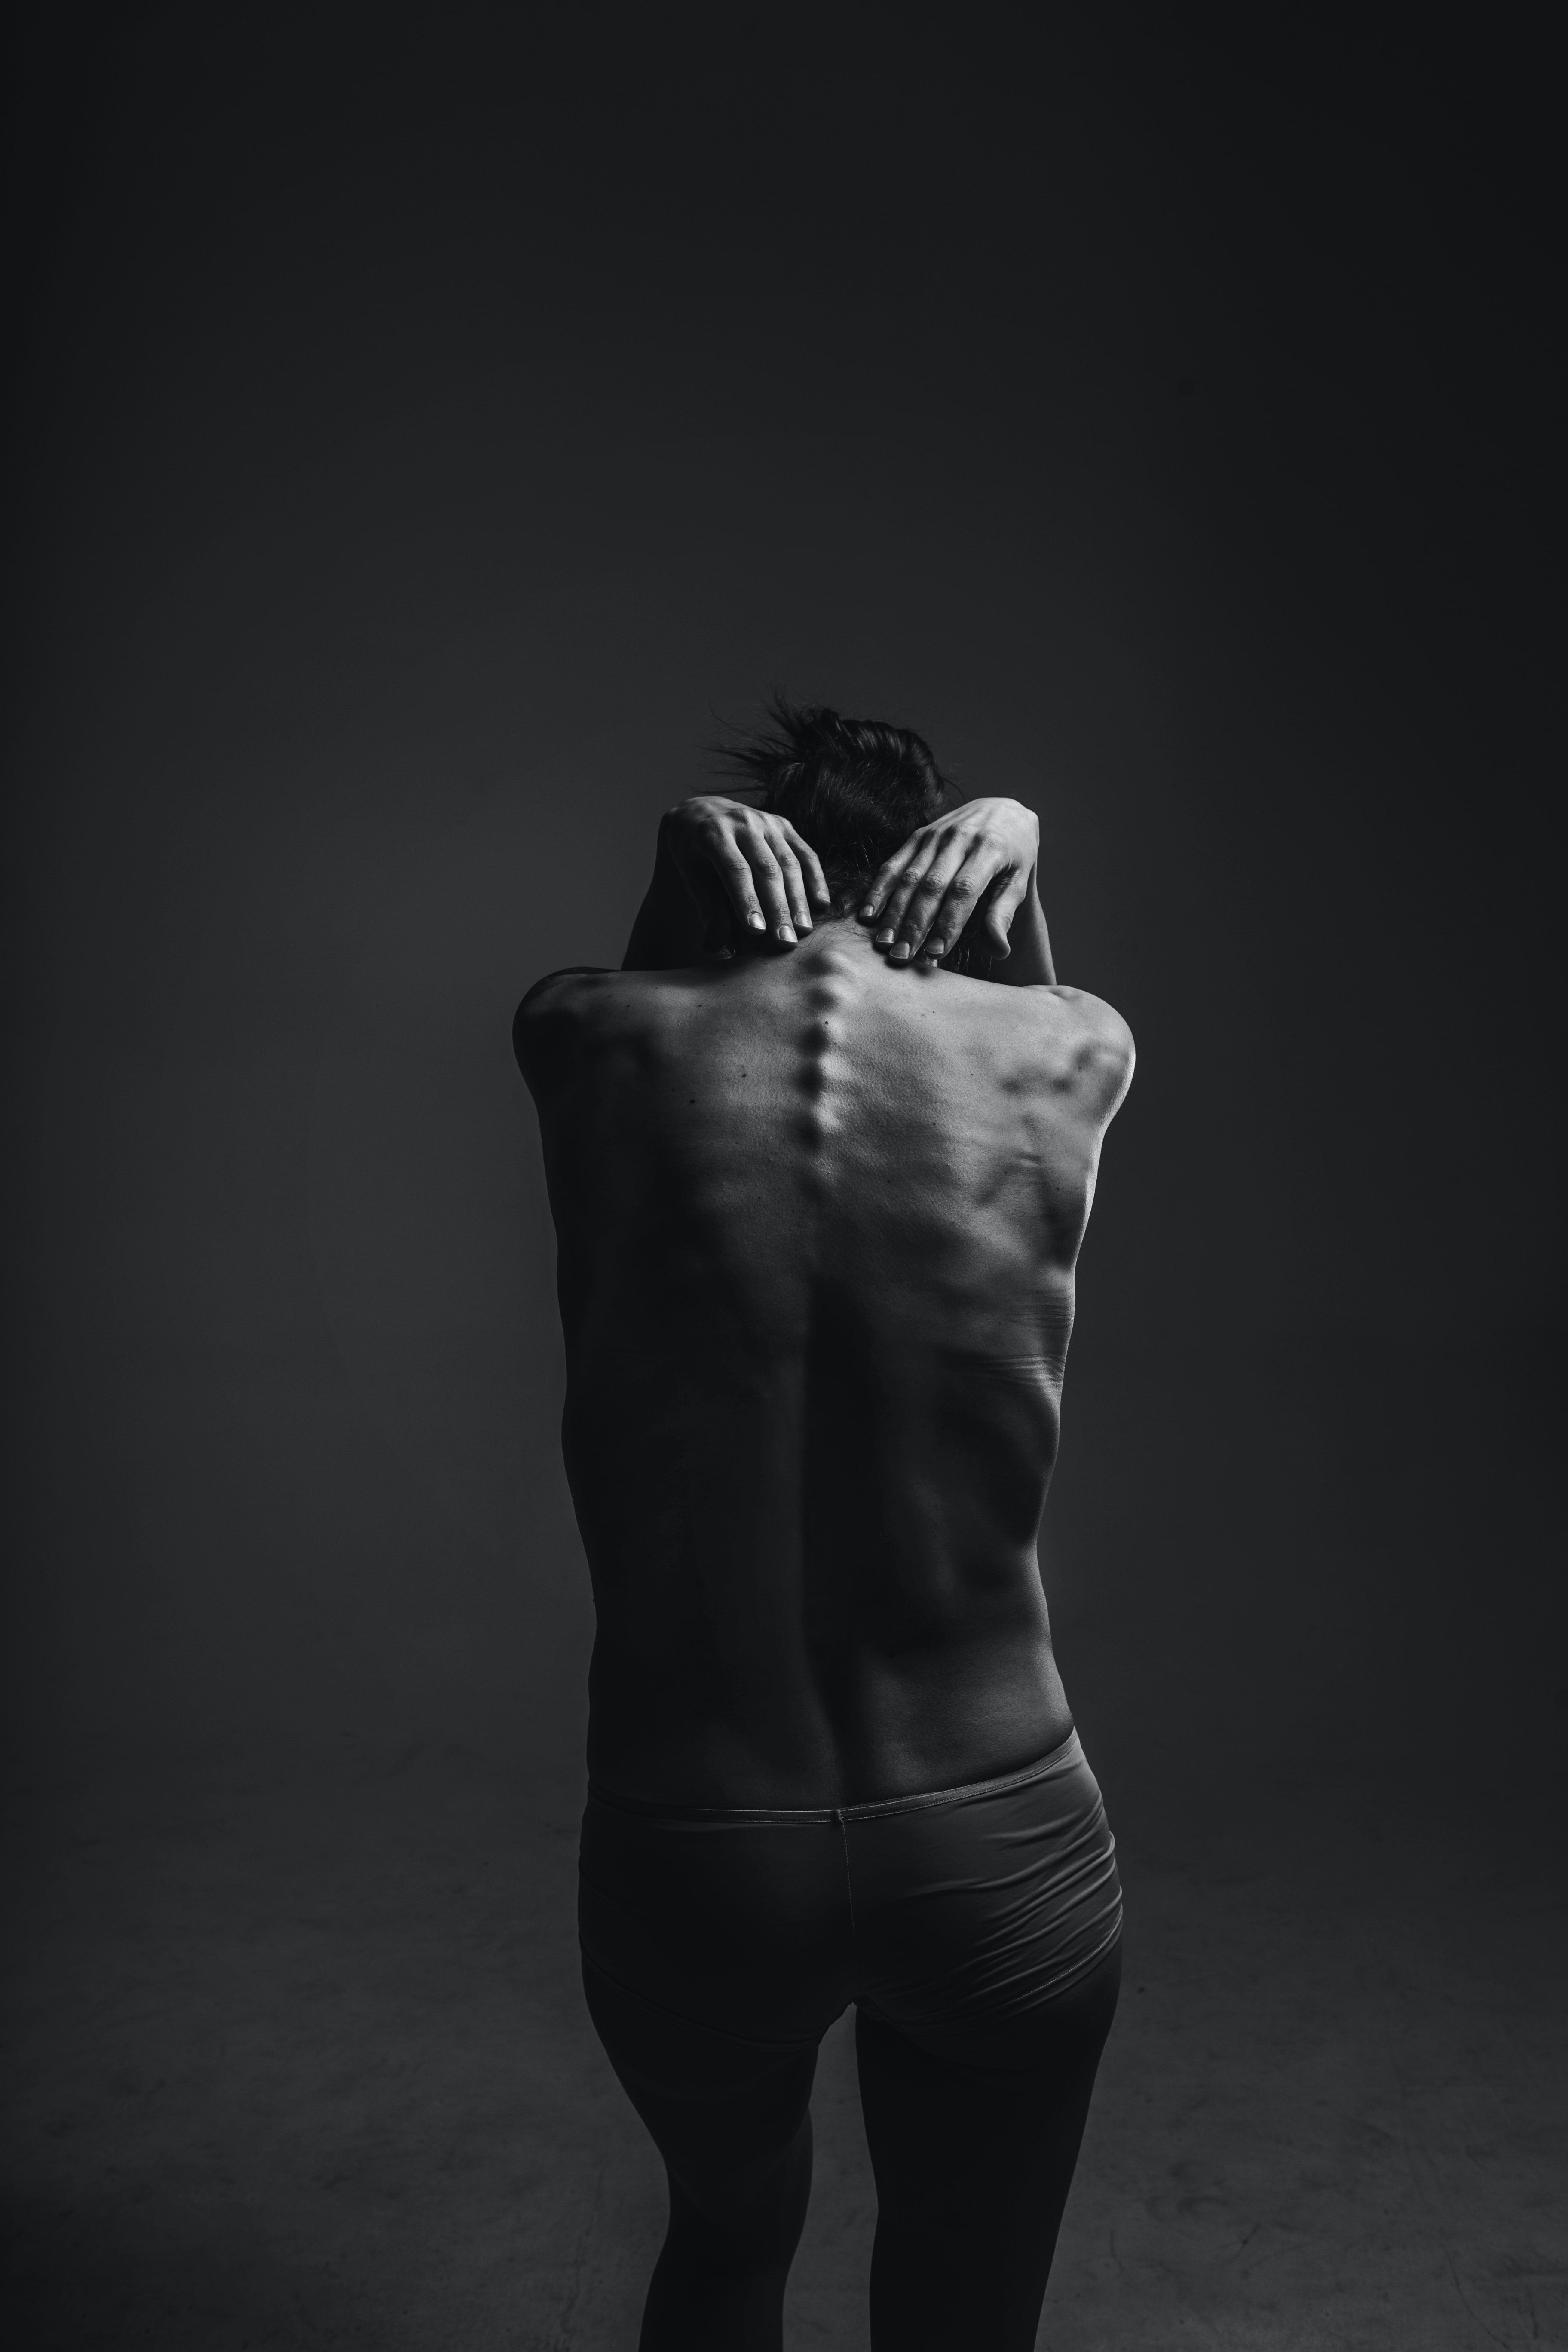 A black and white image of a person sticking their spine out in a photography studio in Kyiv city